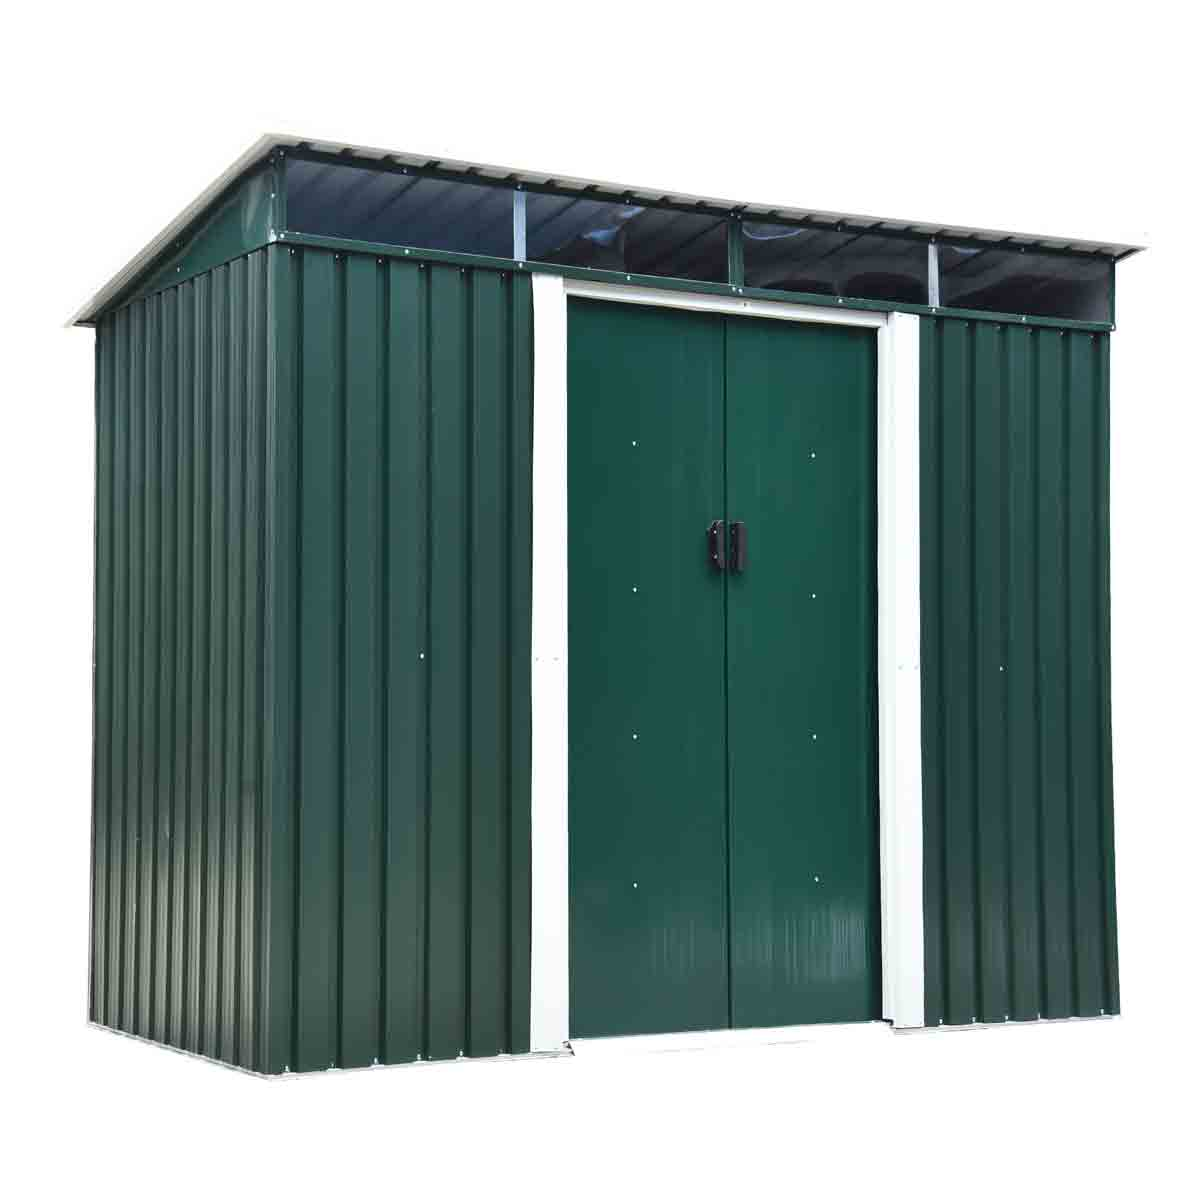 Outsunny 8' 4'' x 4' 4'' Metal Pent Storage Shed - Green